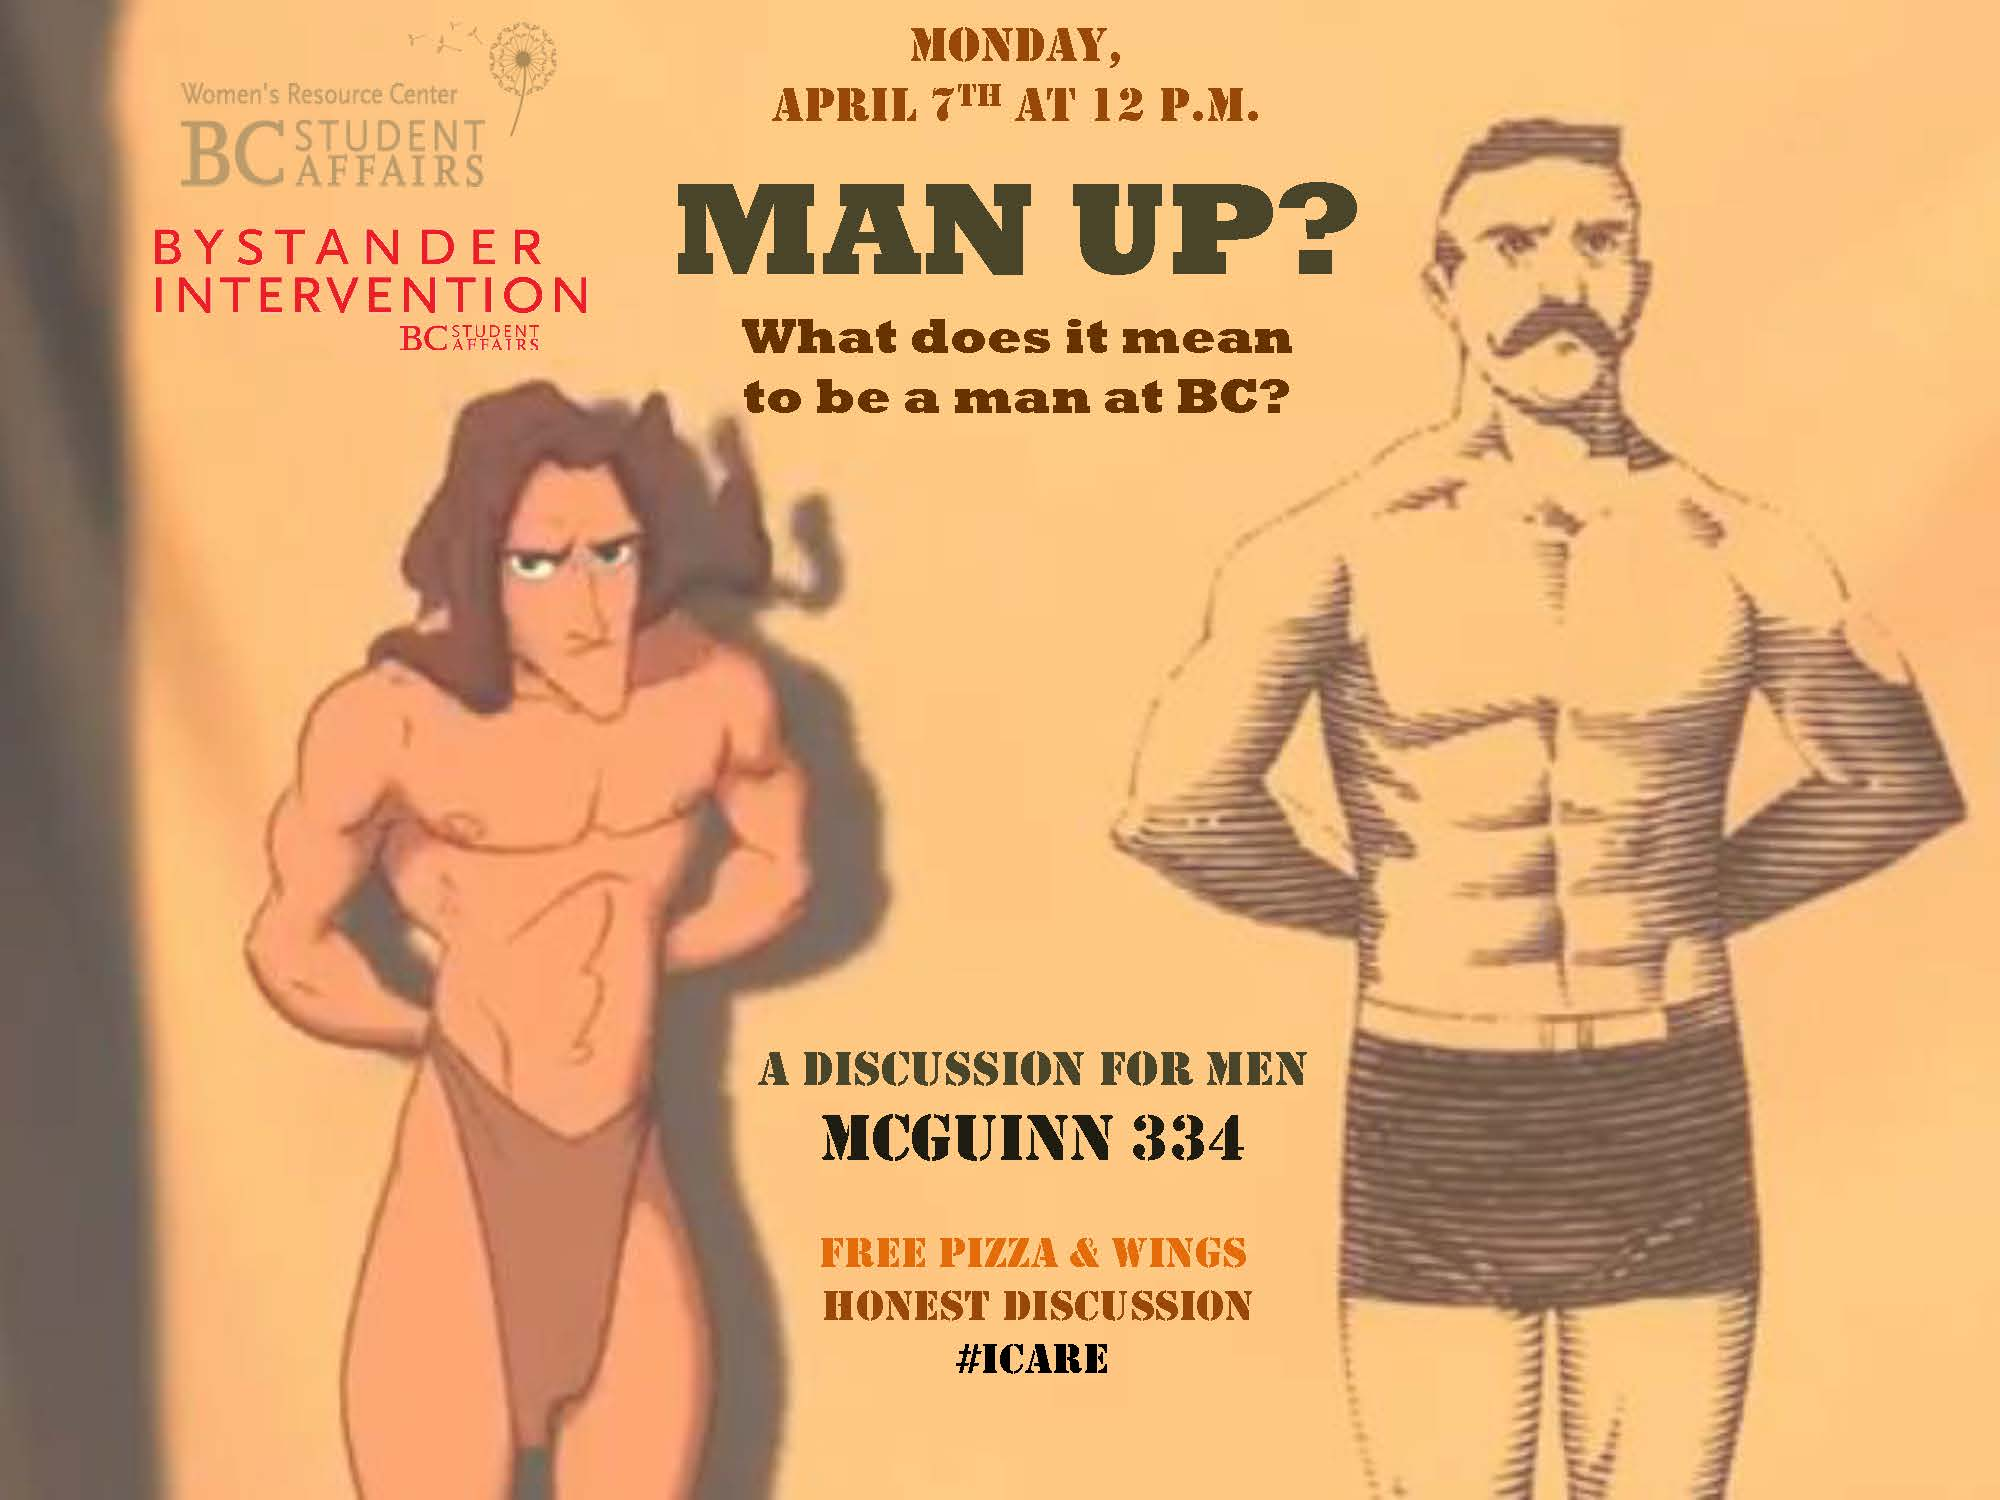 Man Up Flyer - 4-7-14